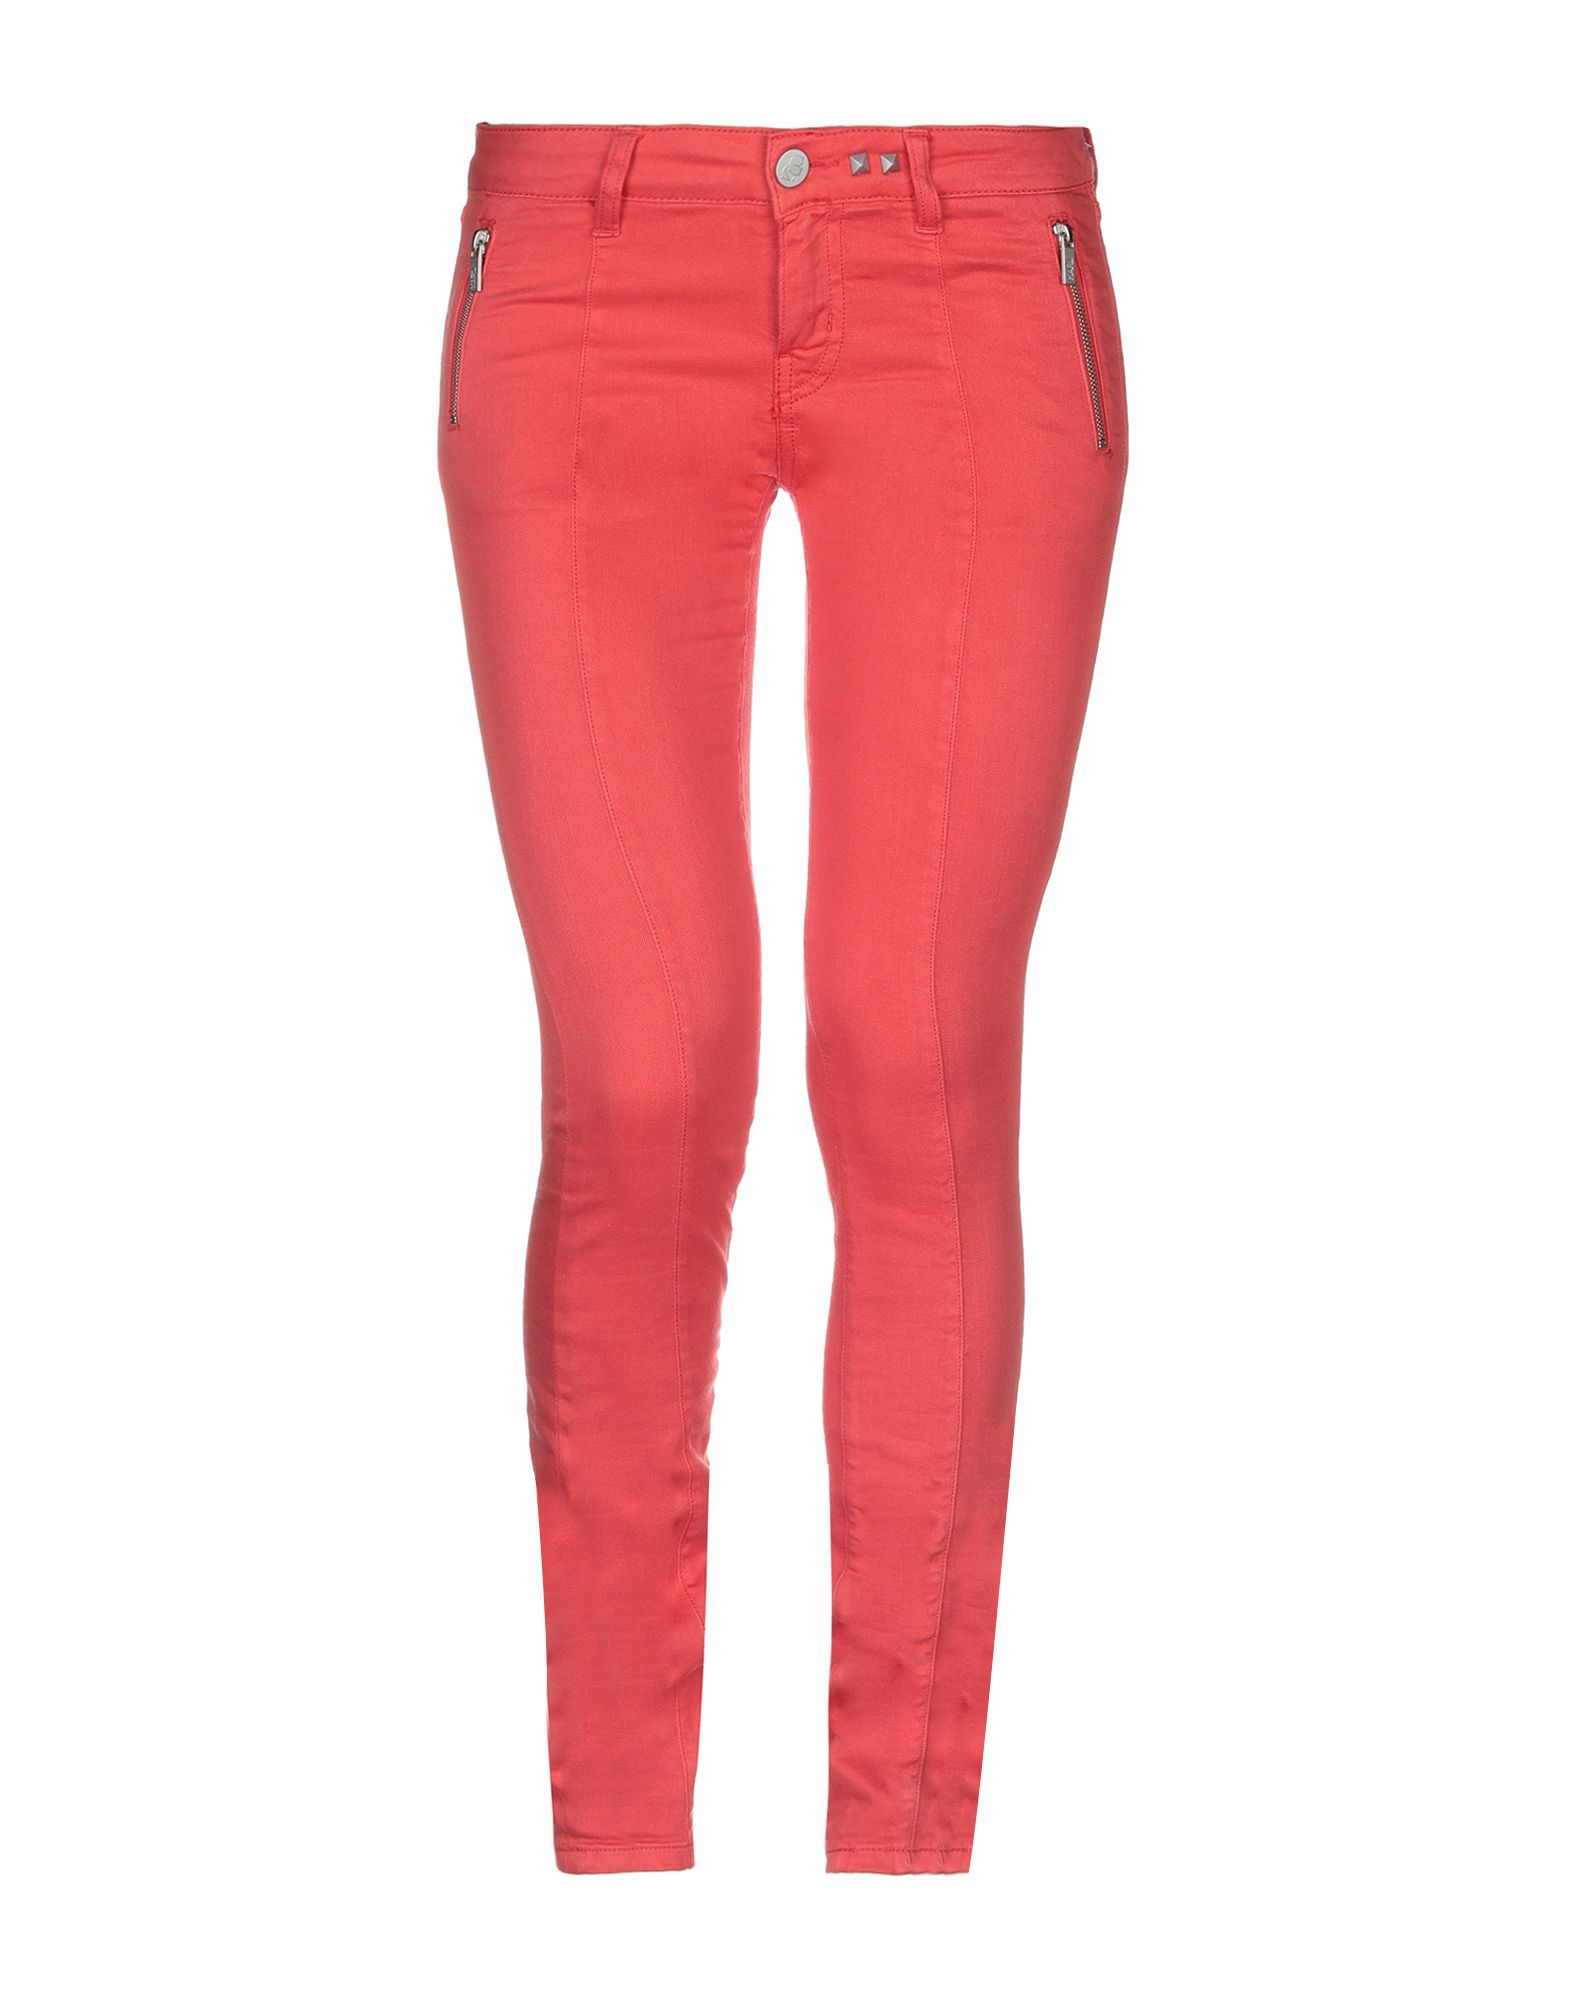 Karl Lagerfeld Coral Cotton Skinny Jeans